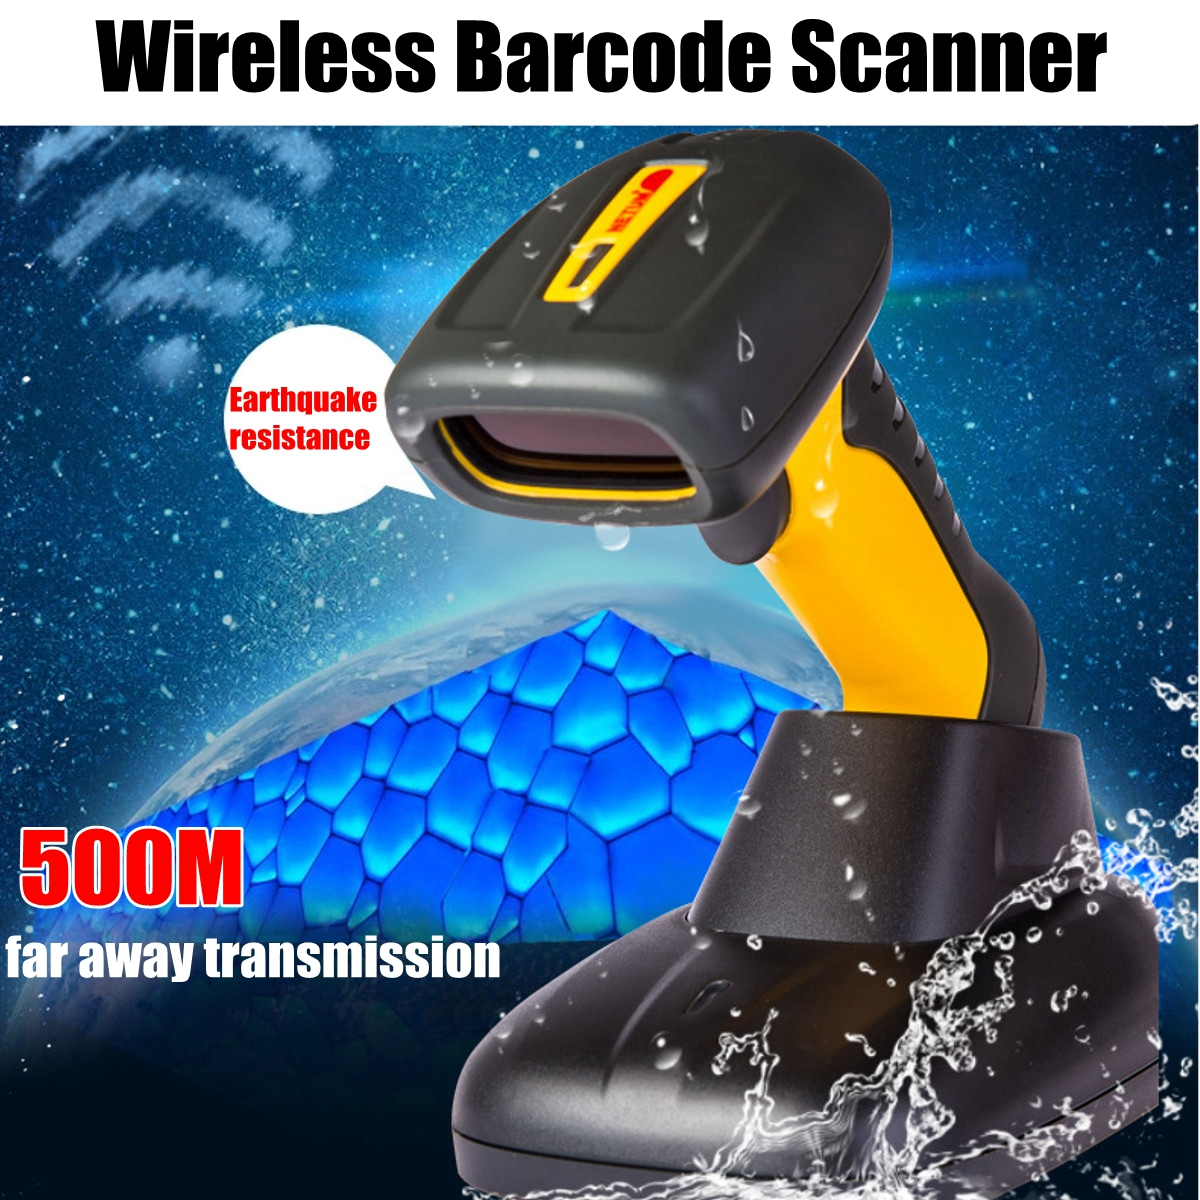 NT-1209 Handheld Wireless Barcode Scanner Industrial IP67 Waterproof 32bit Bar Code Scanner for POS System цена 2017